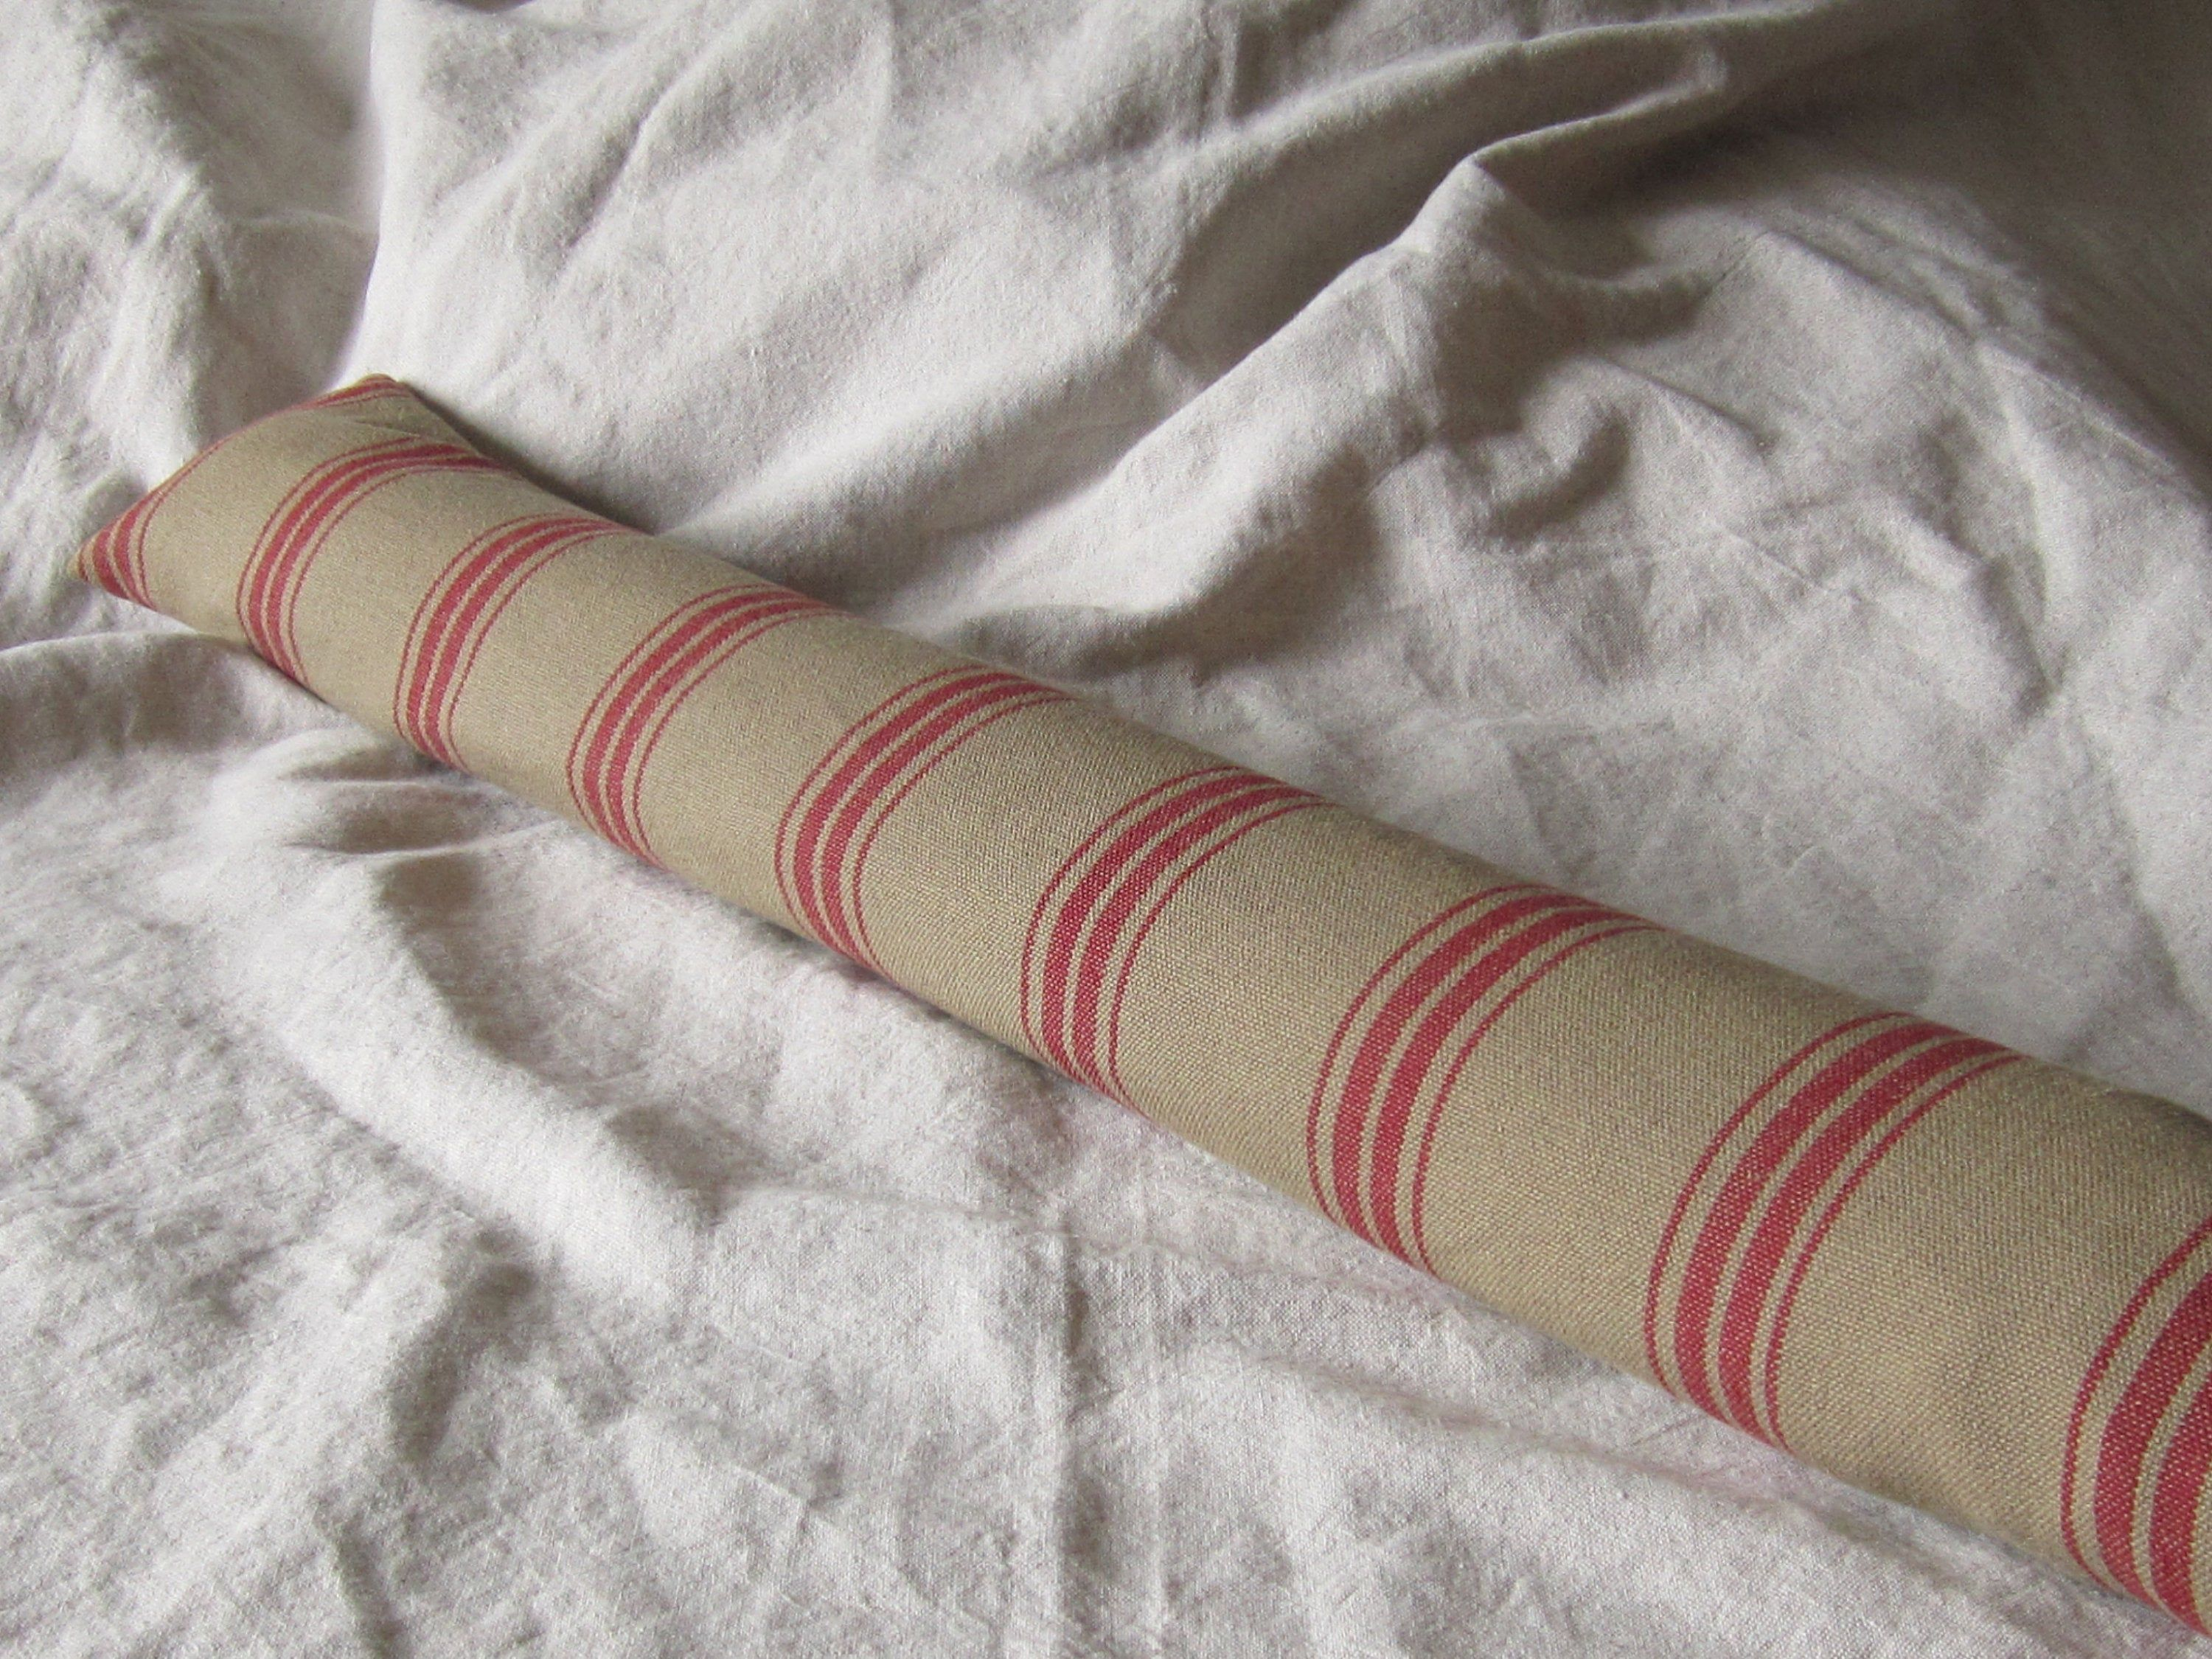 Ticking Draught Excluder French Farmhouse Draft Excluder Fabric Draught Stopper Cottage Draft Stop Tan Red Striped Draft Stopper Ticking Fabric Draft Stopper Draught Excluder